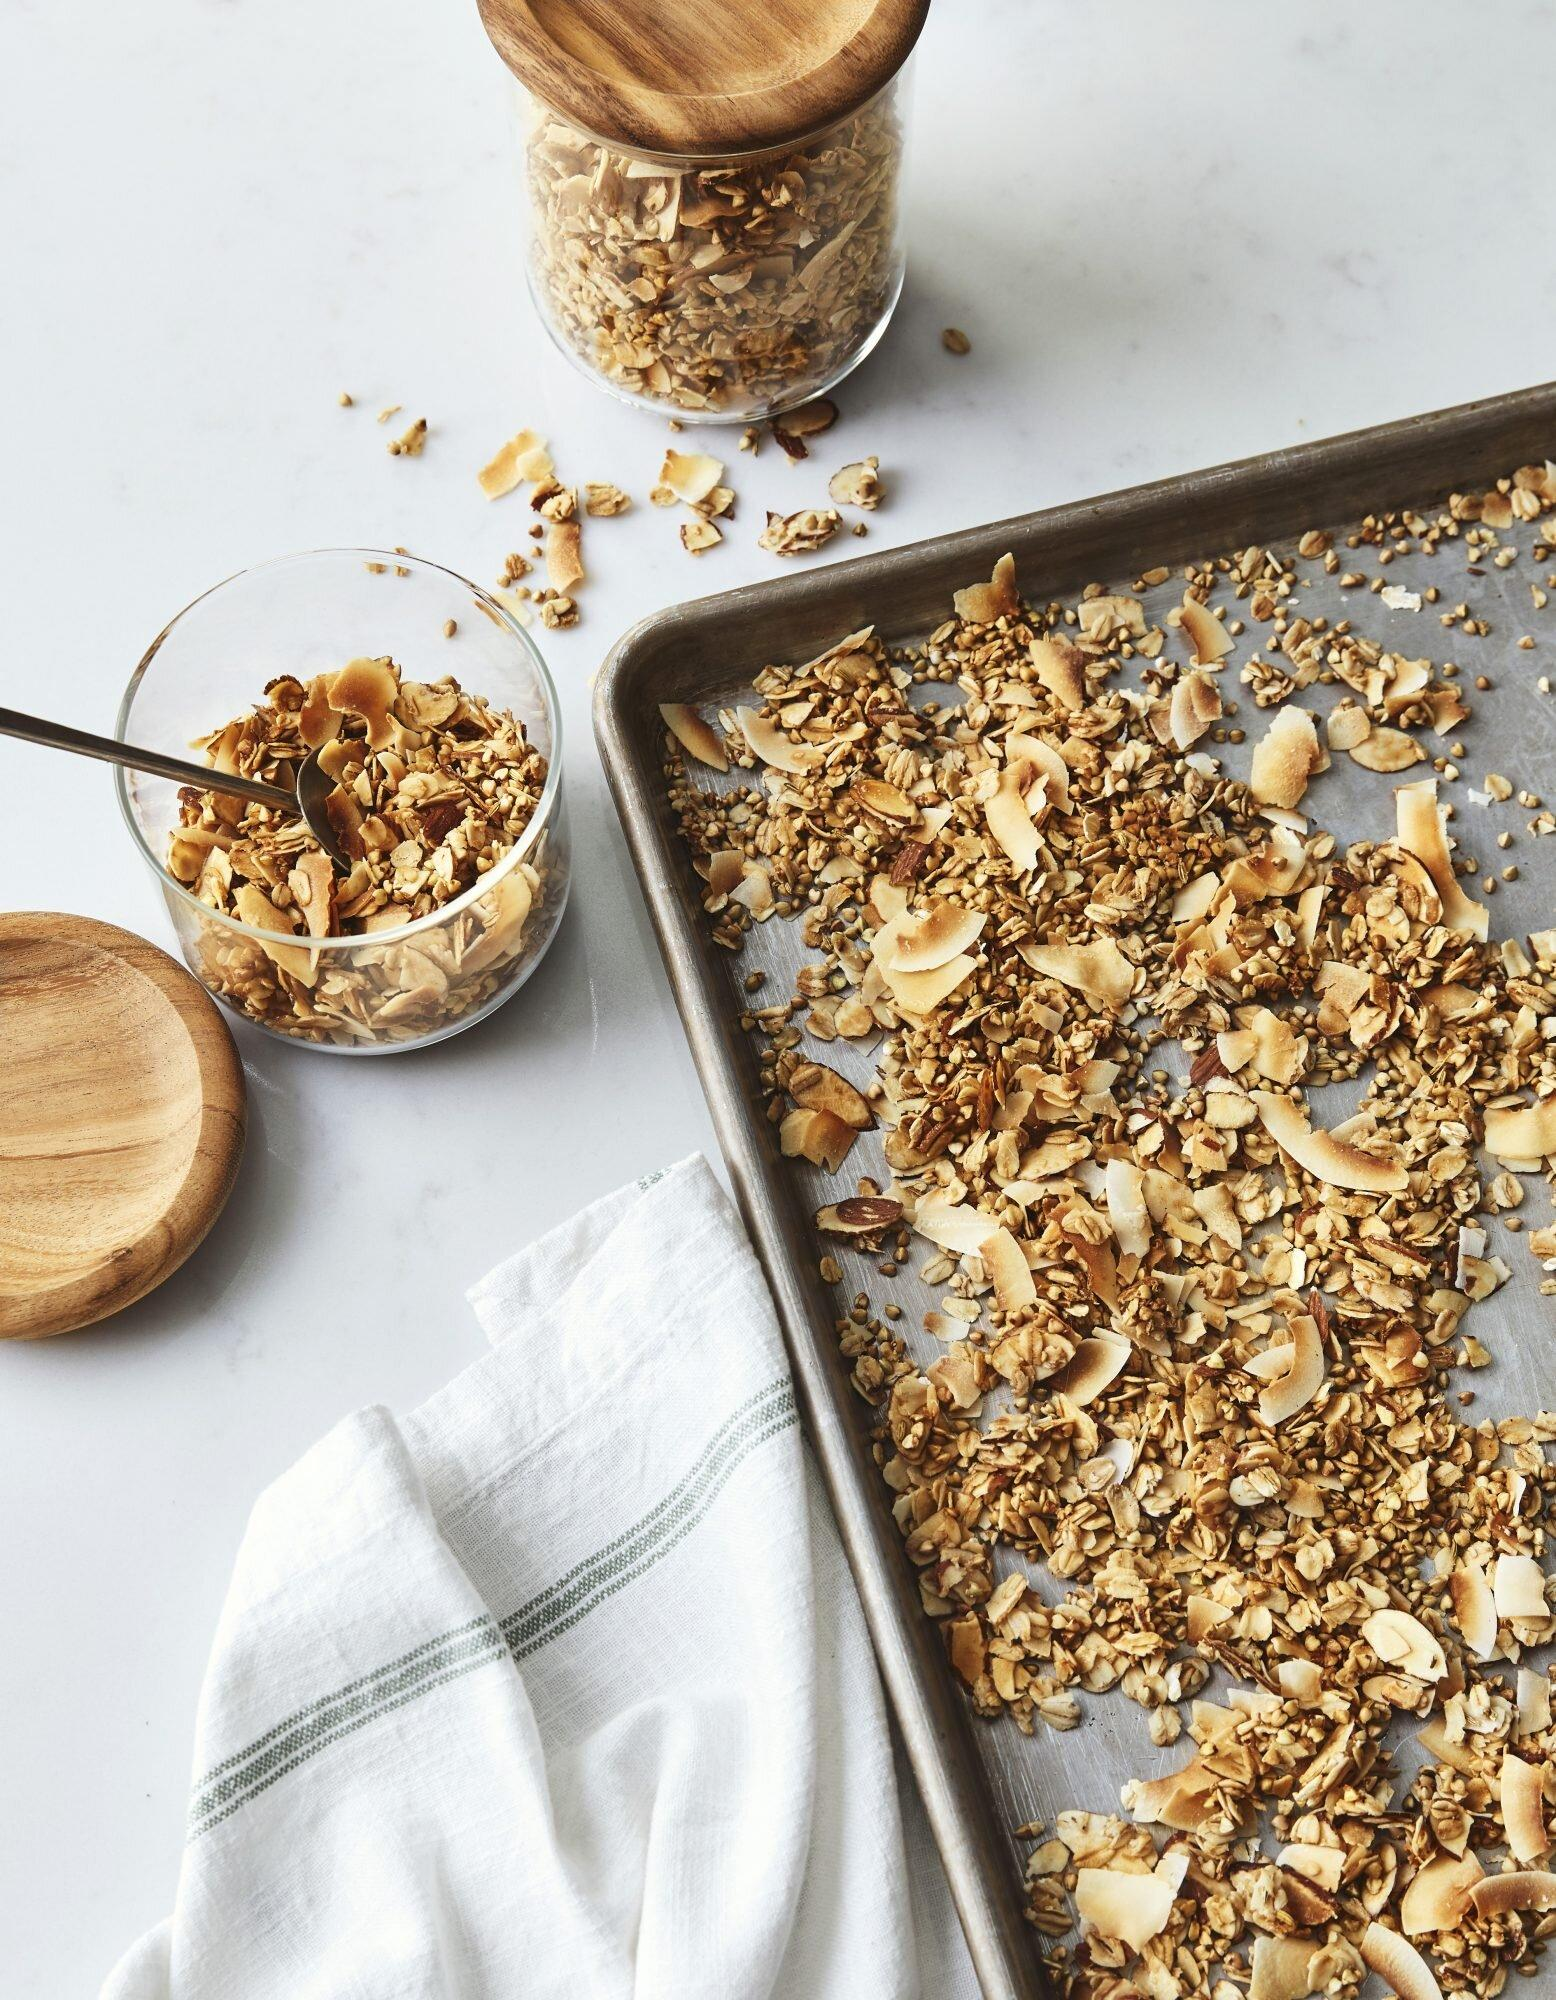 7 Delicious RD-Approved Ways to Eat Oats (That Don't Involve Oatmeal)